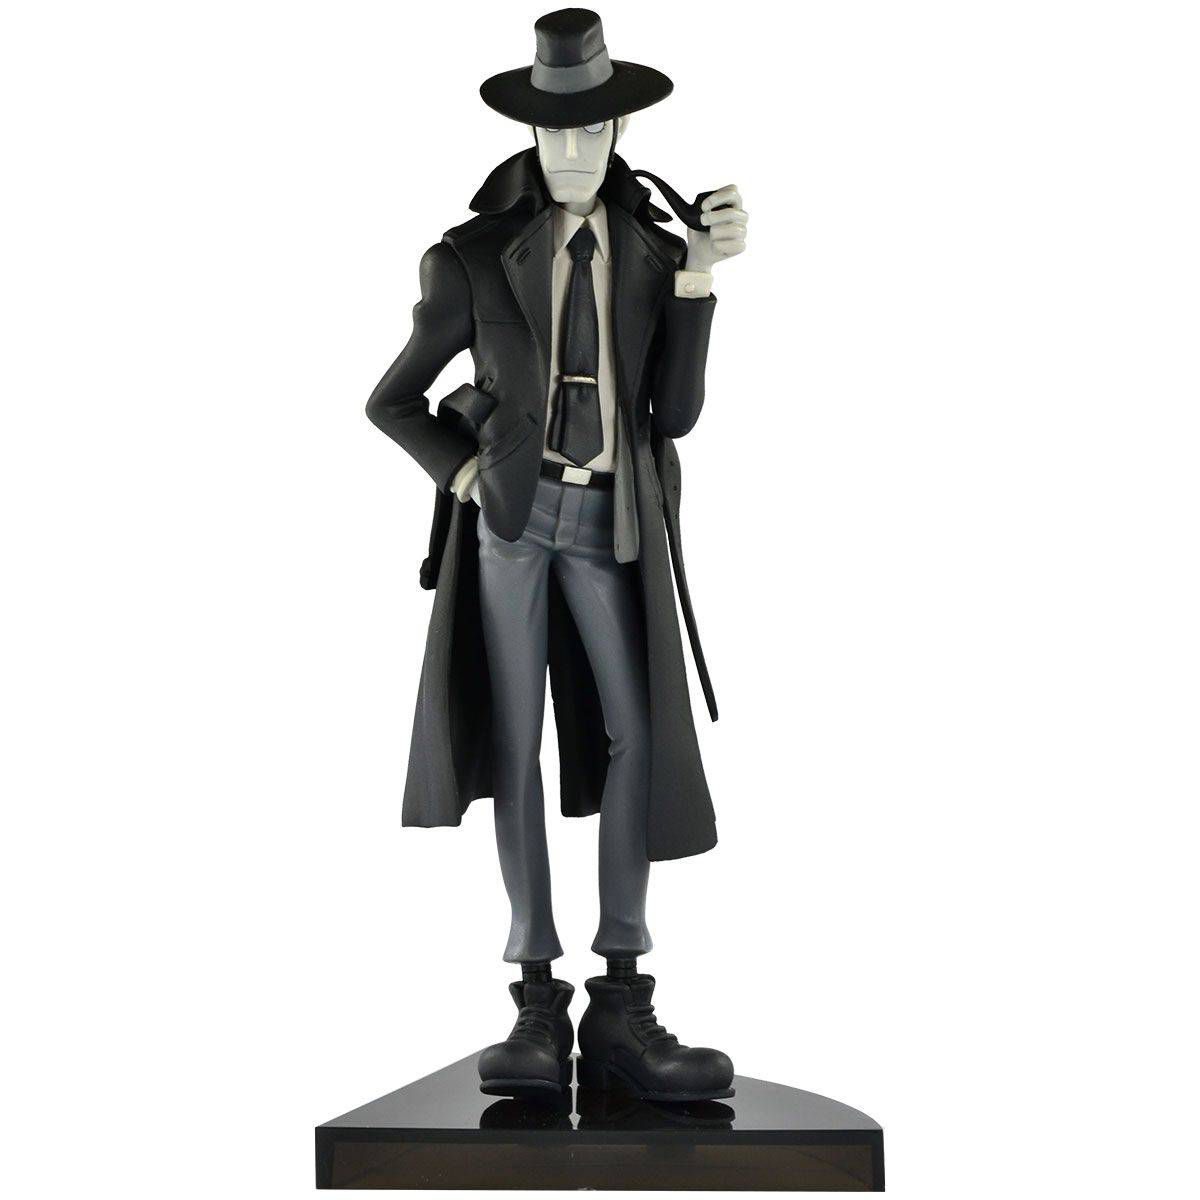 INSPECTOR ZENIGATA -  Lupin The Third  - Bandai Banpresto